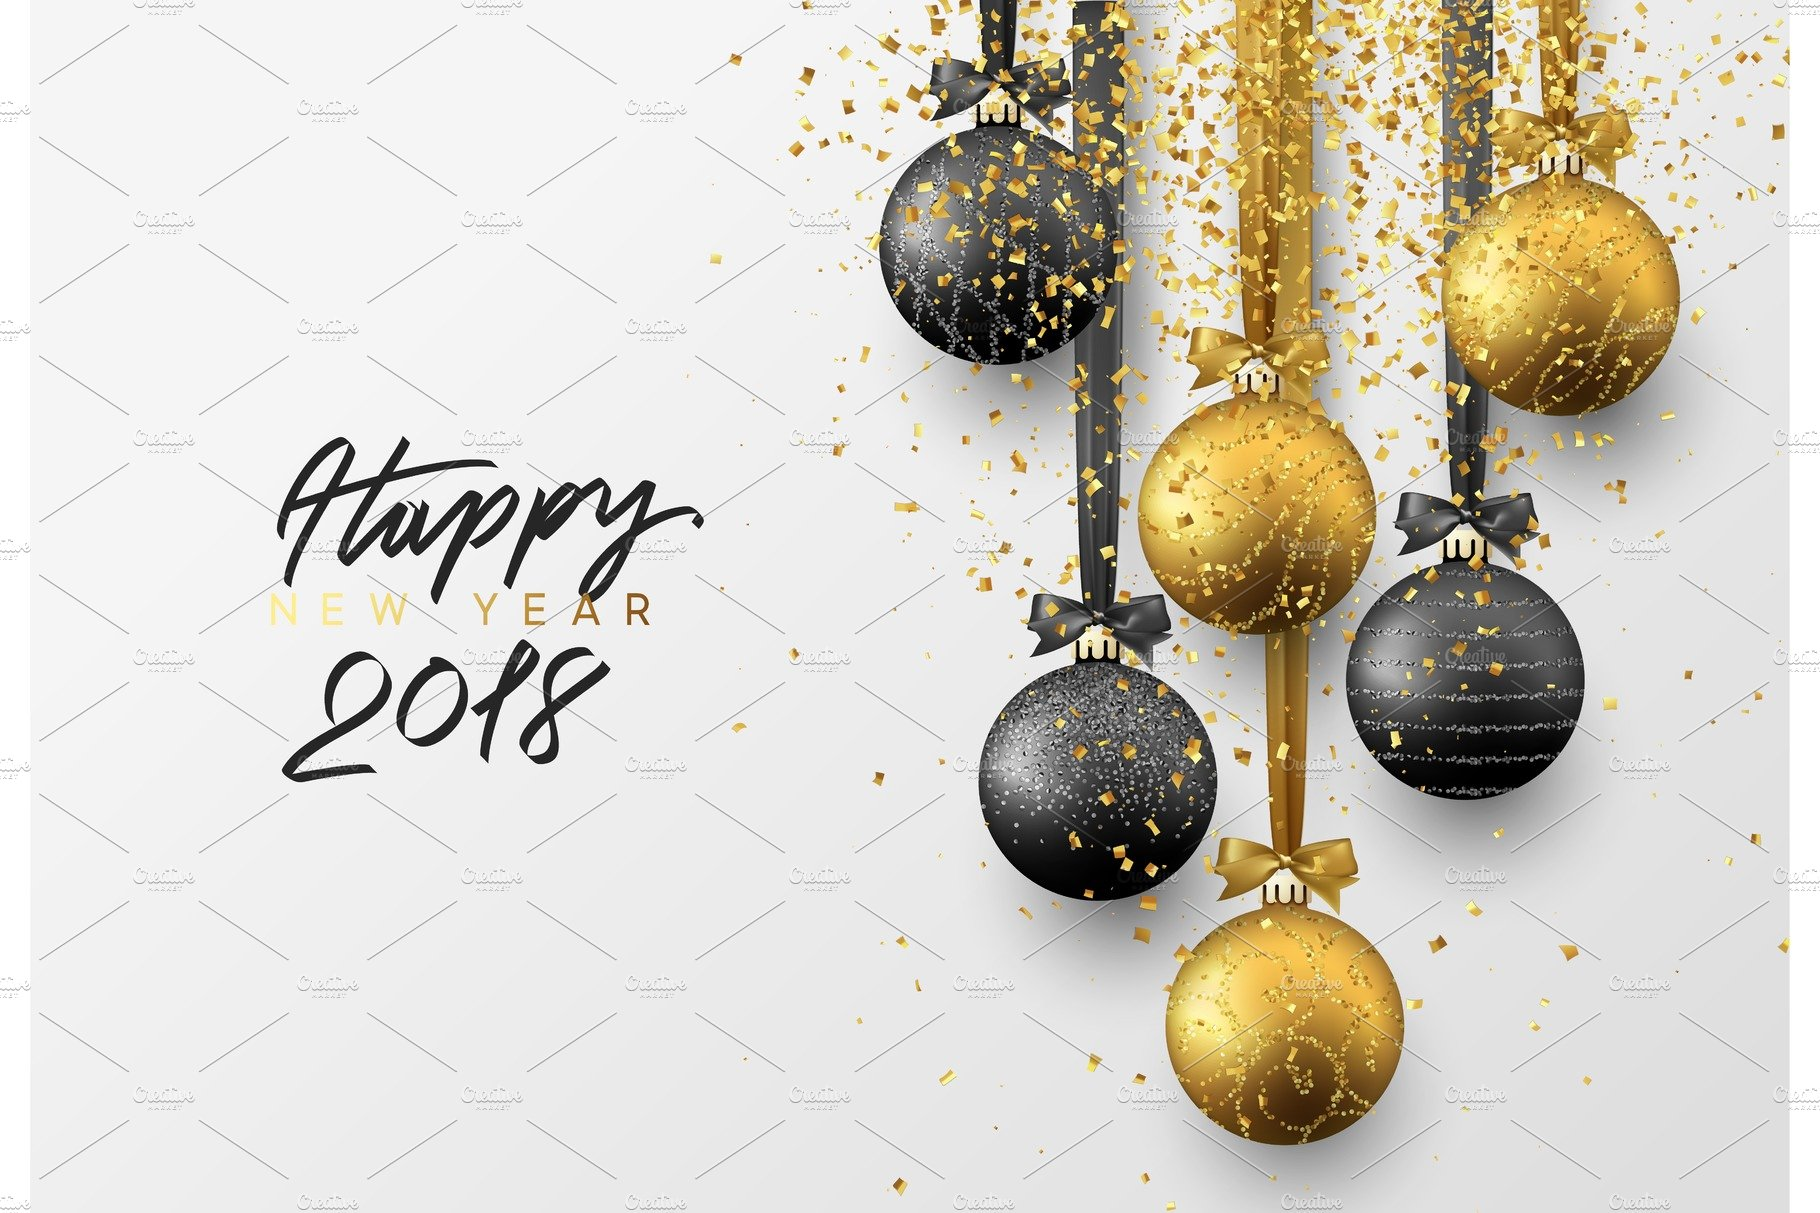 Christmas Greeting Card Design Of Xmas Balls With Golden Glitter